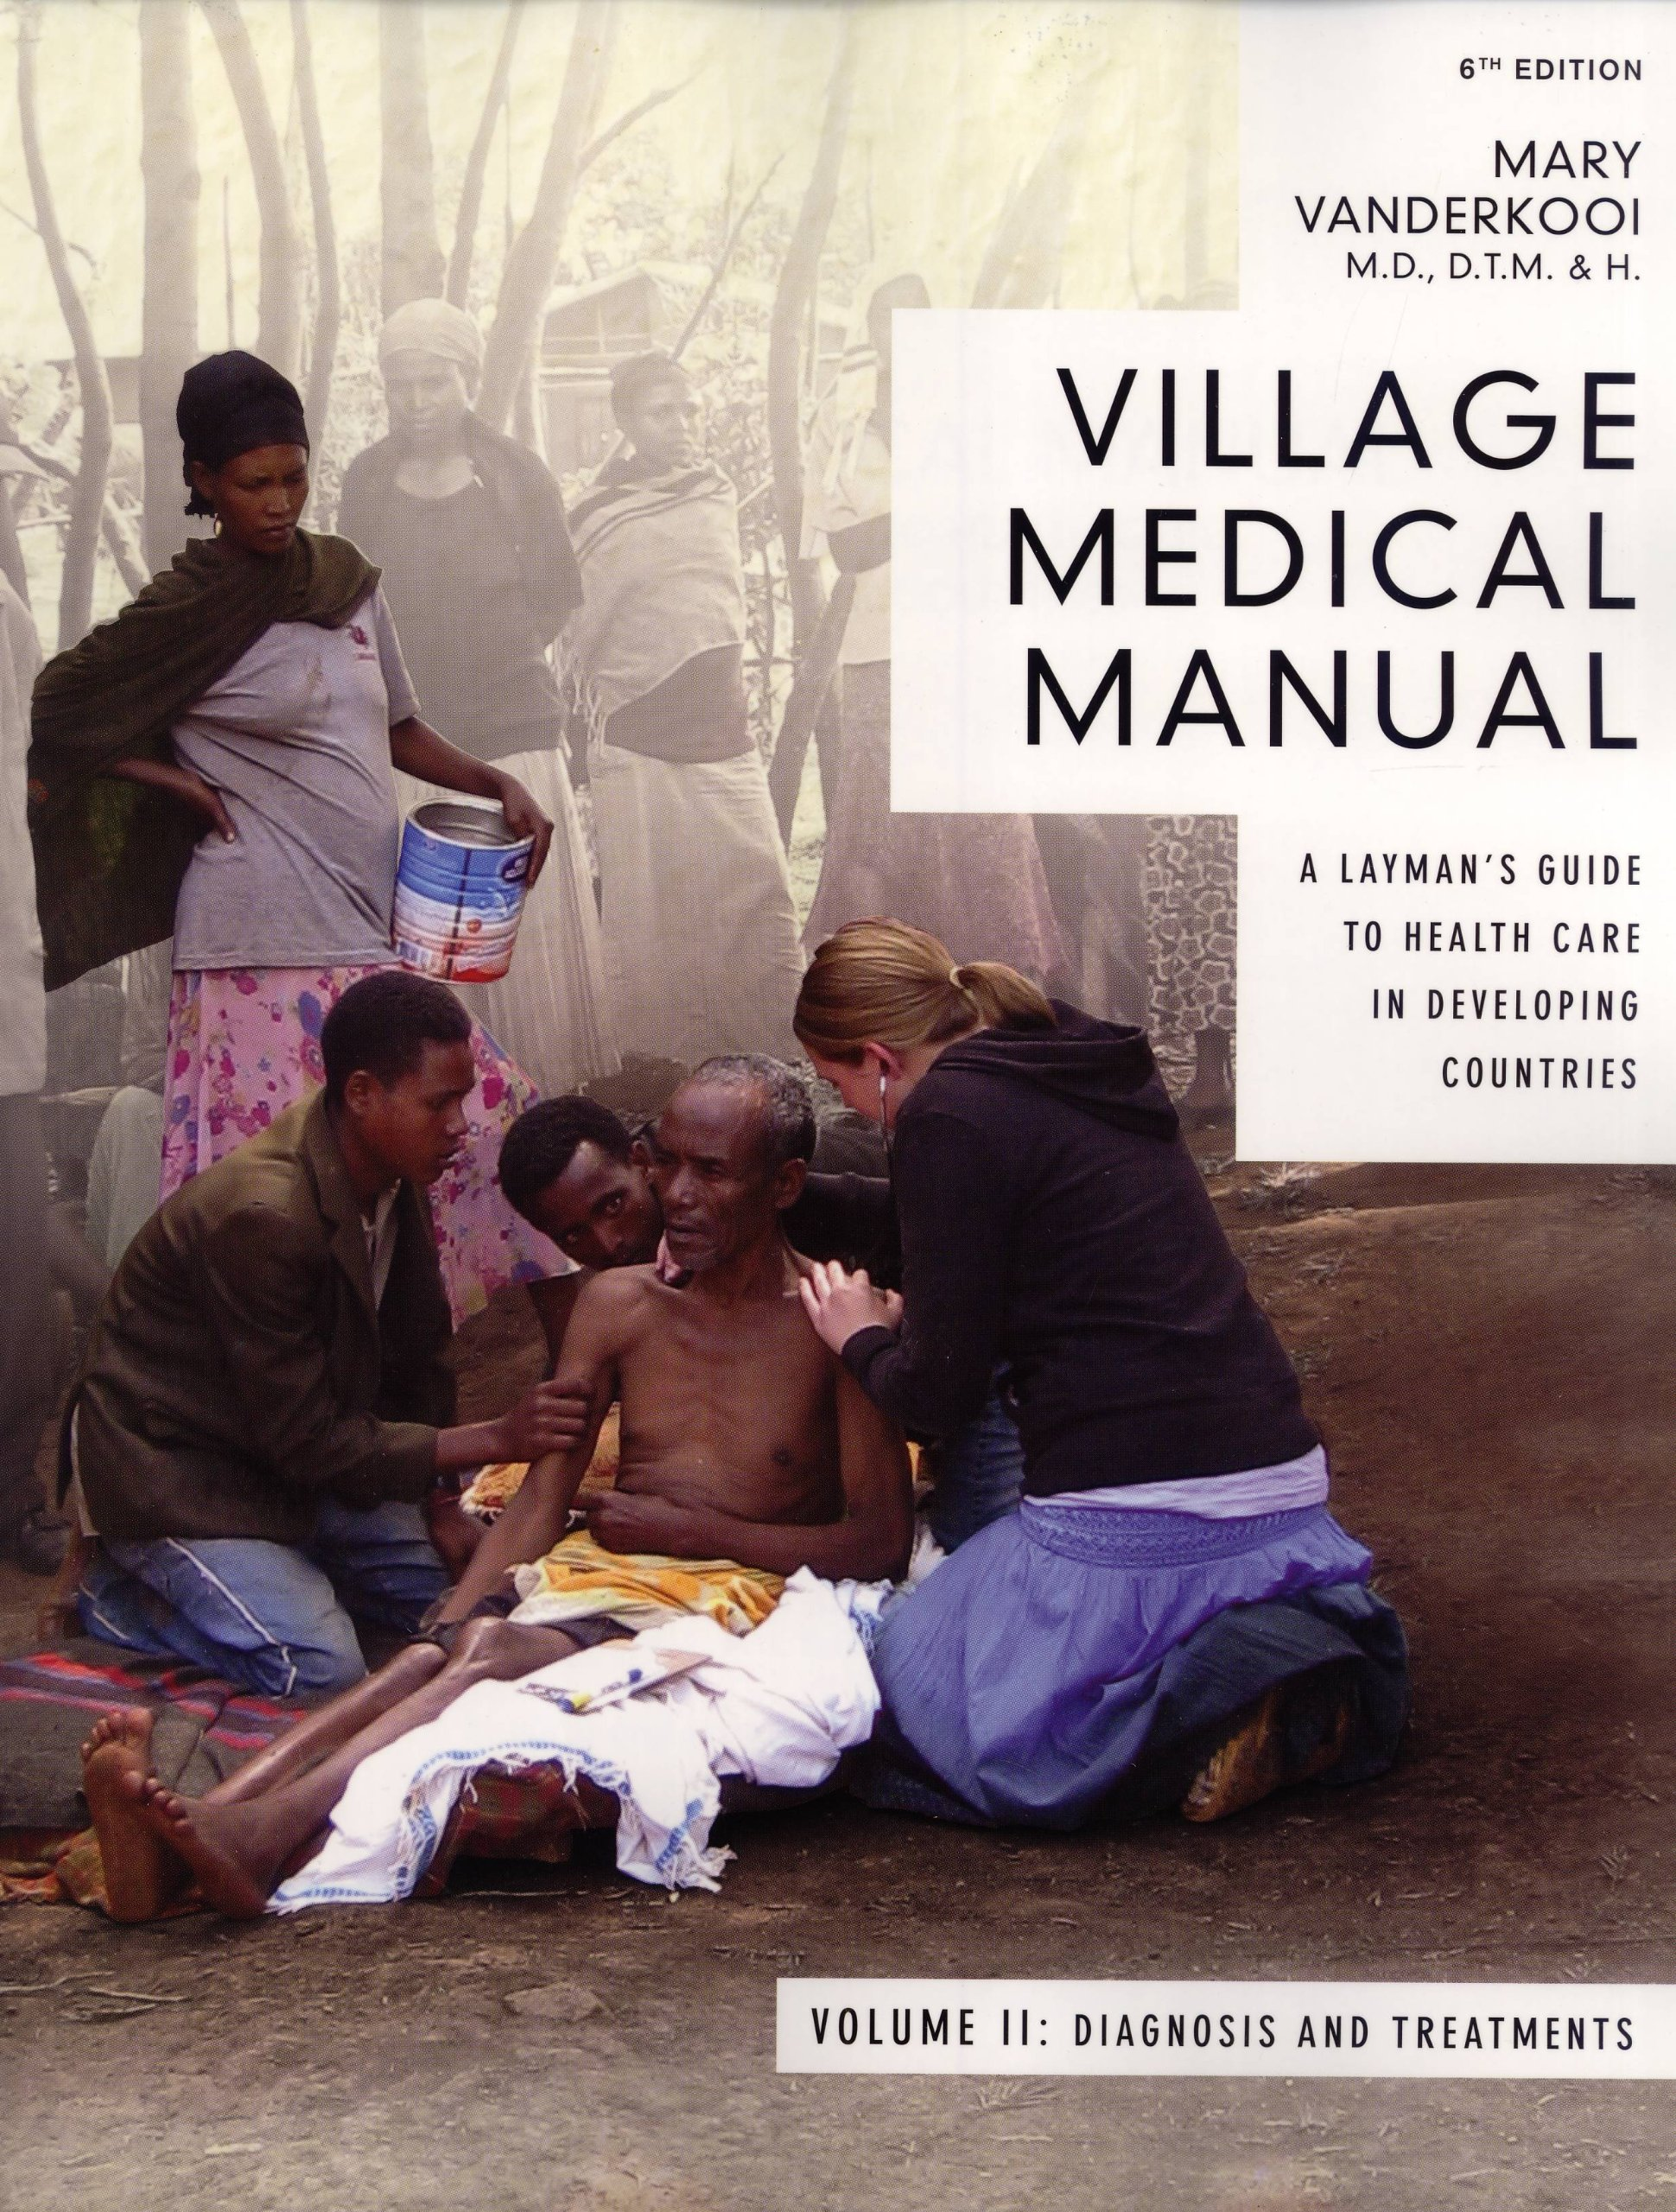 The Village Medical Manual: A survival medicine guide